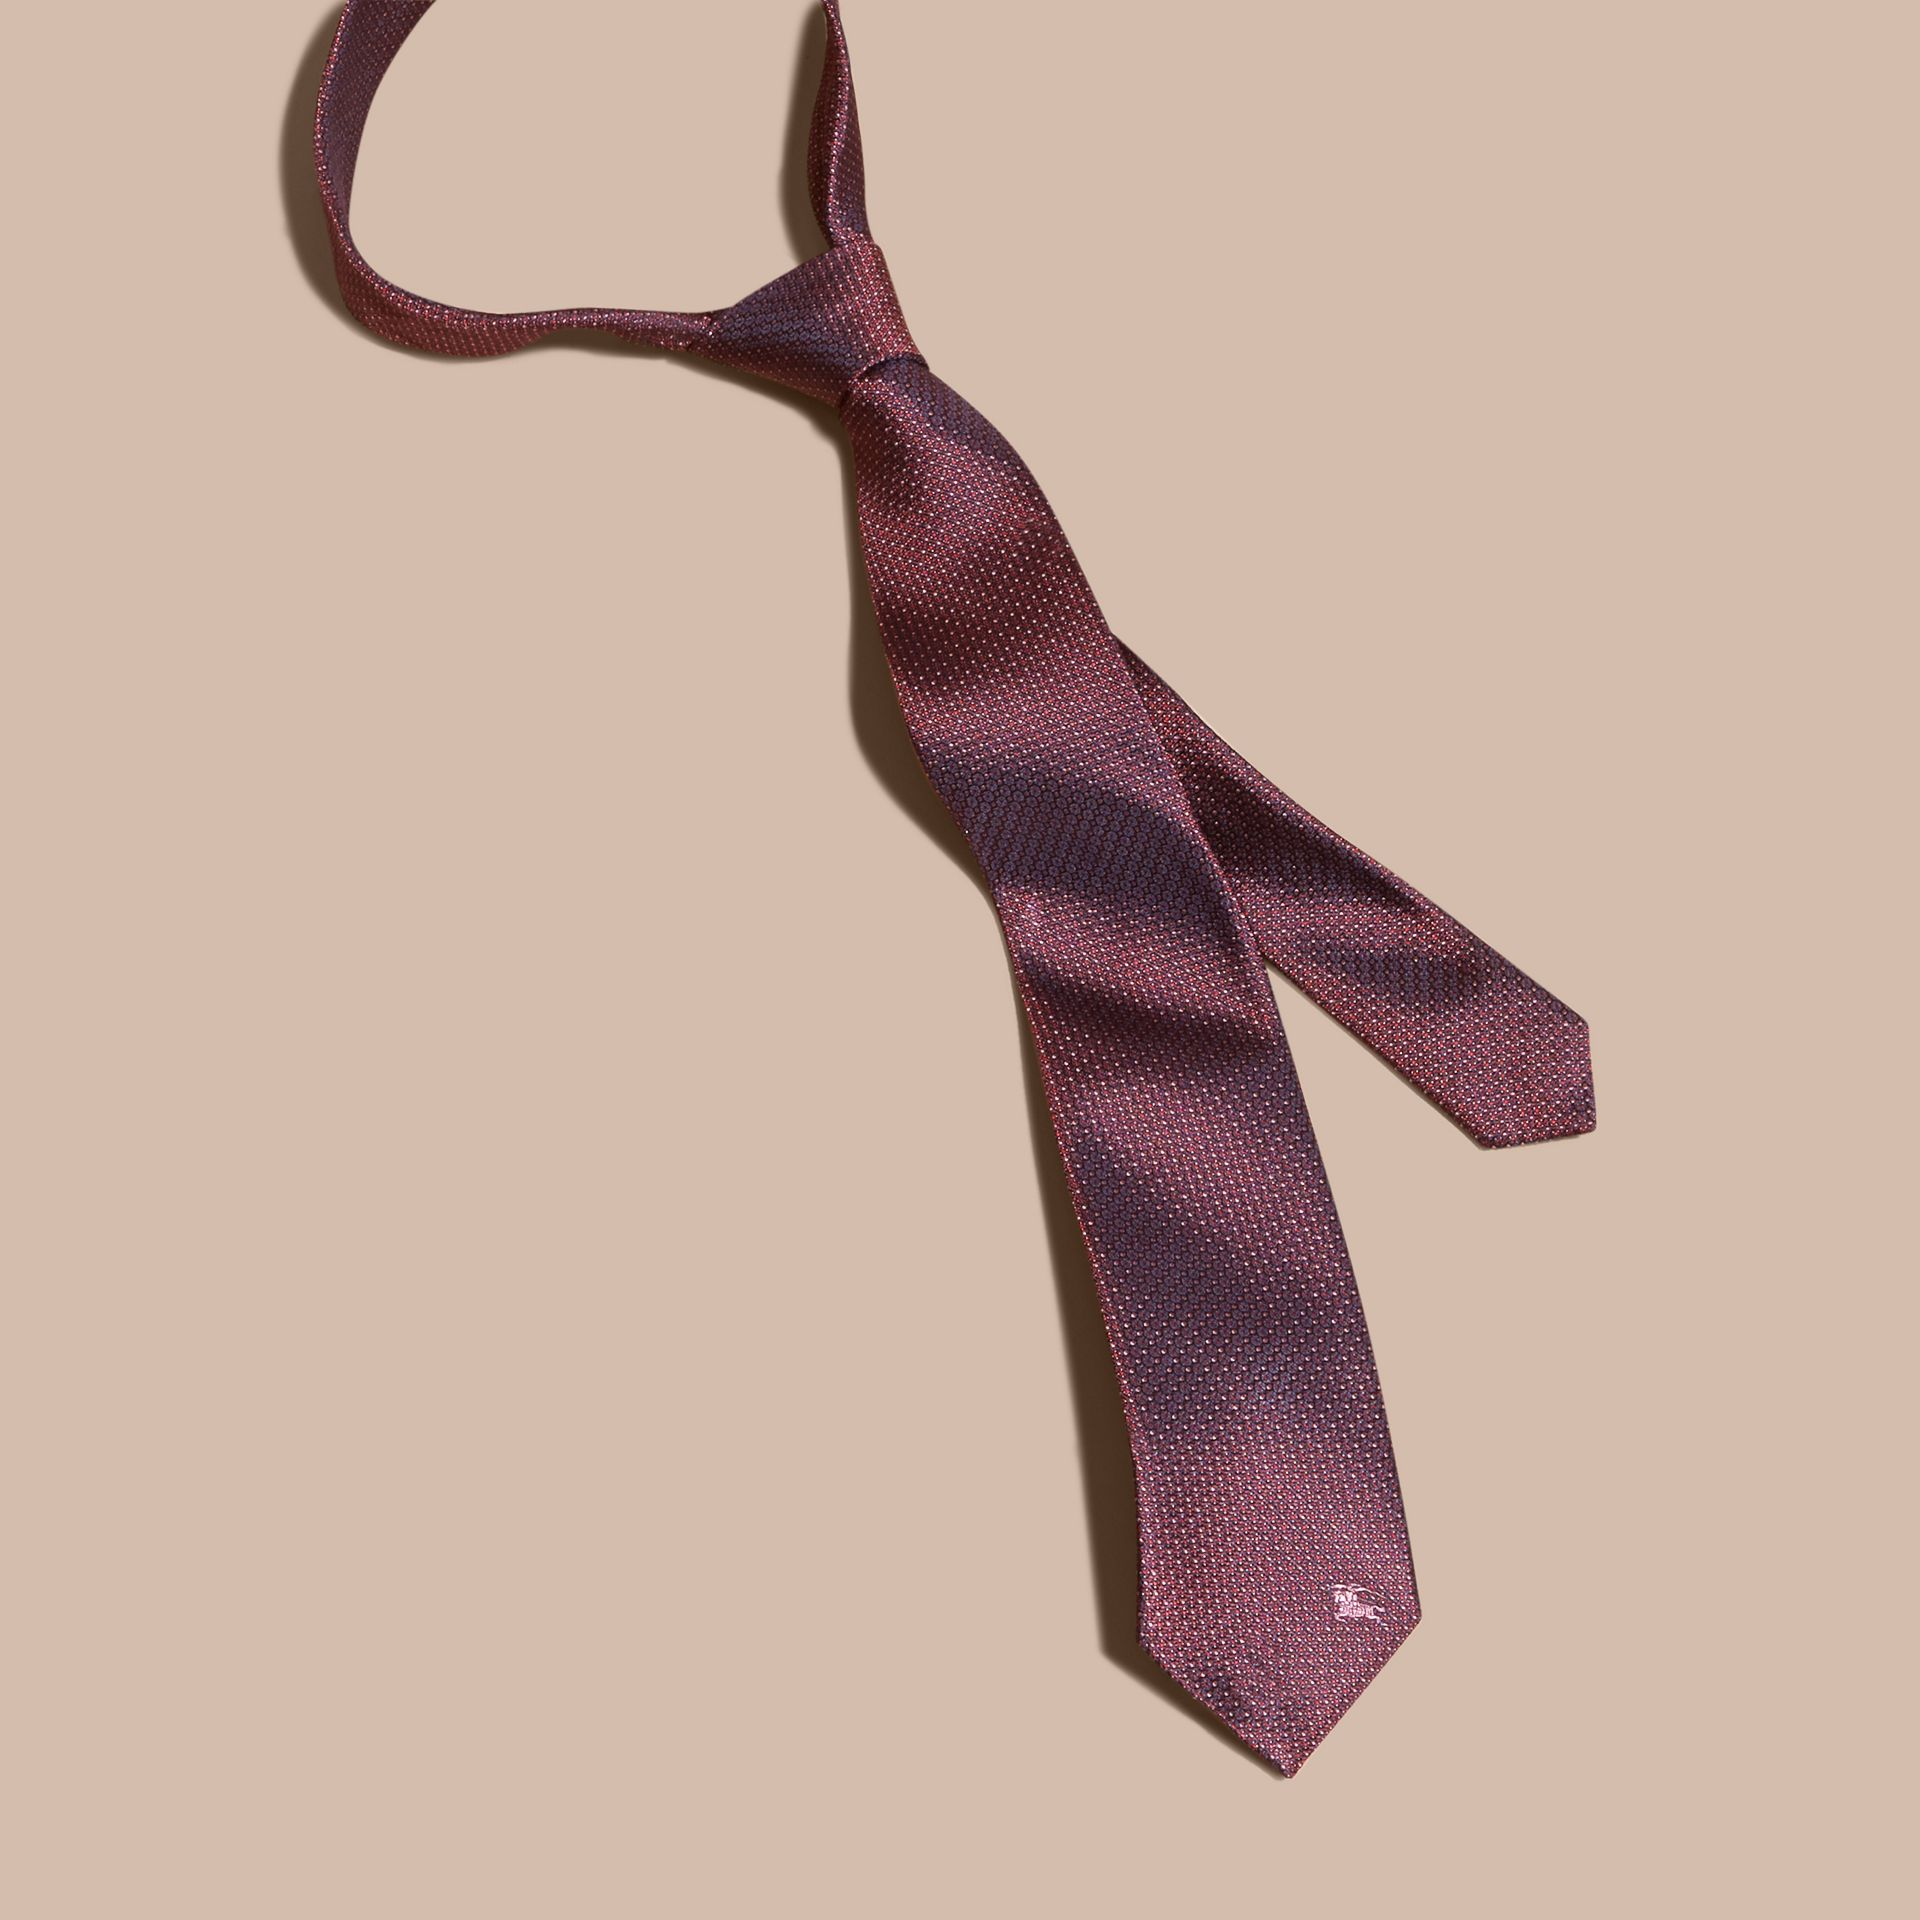 Modern Cut Patterned Silk Tie in Deep Claret - Men | Burberry Singapore - gallery image 5